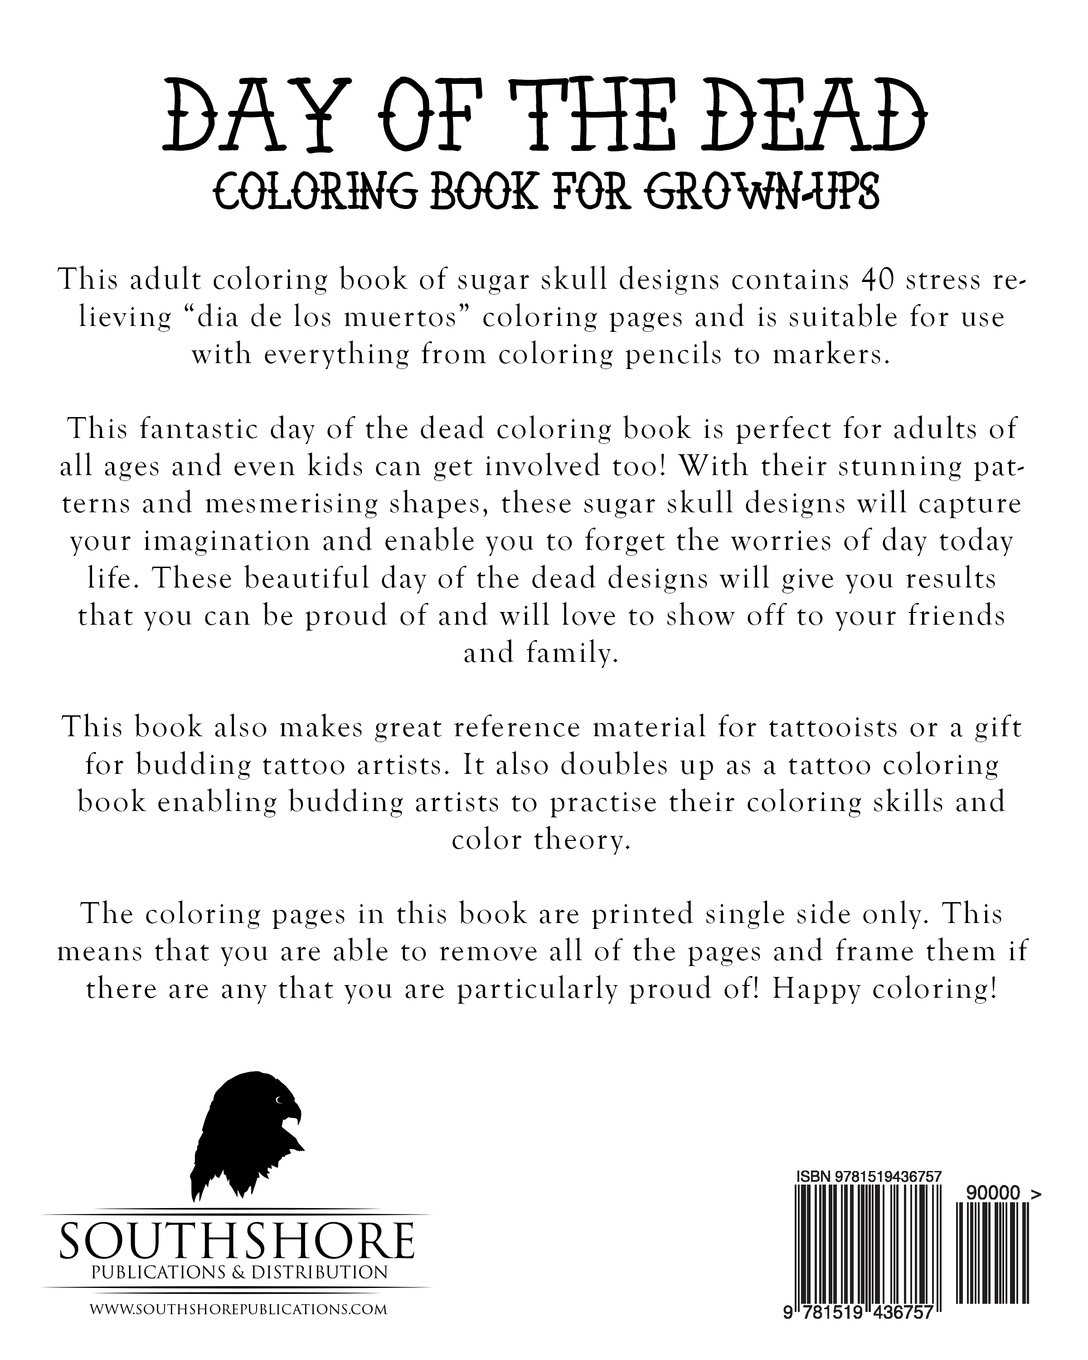 The coloring book of the dead - Day Of The Dead Coloring Book For Grown Ups Dia De Los Muertos Themed Sugar Skull Coloring Pages For Adults Day Of The Dead Coloring Books Volume 1